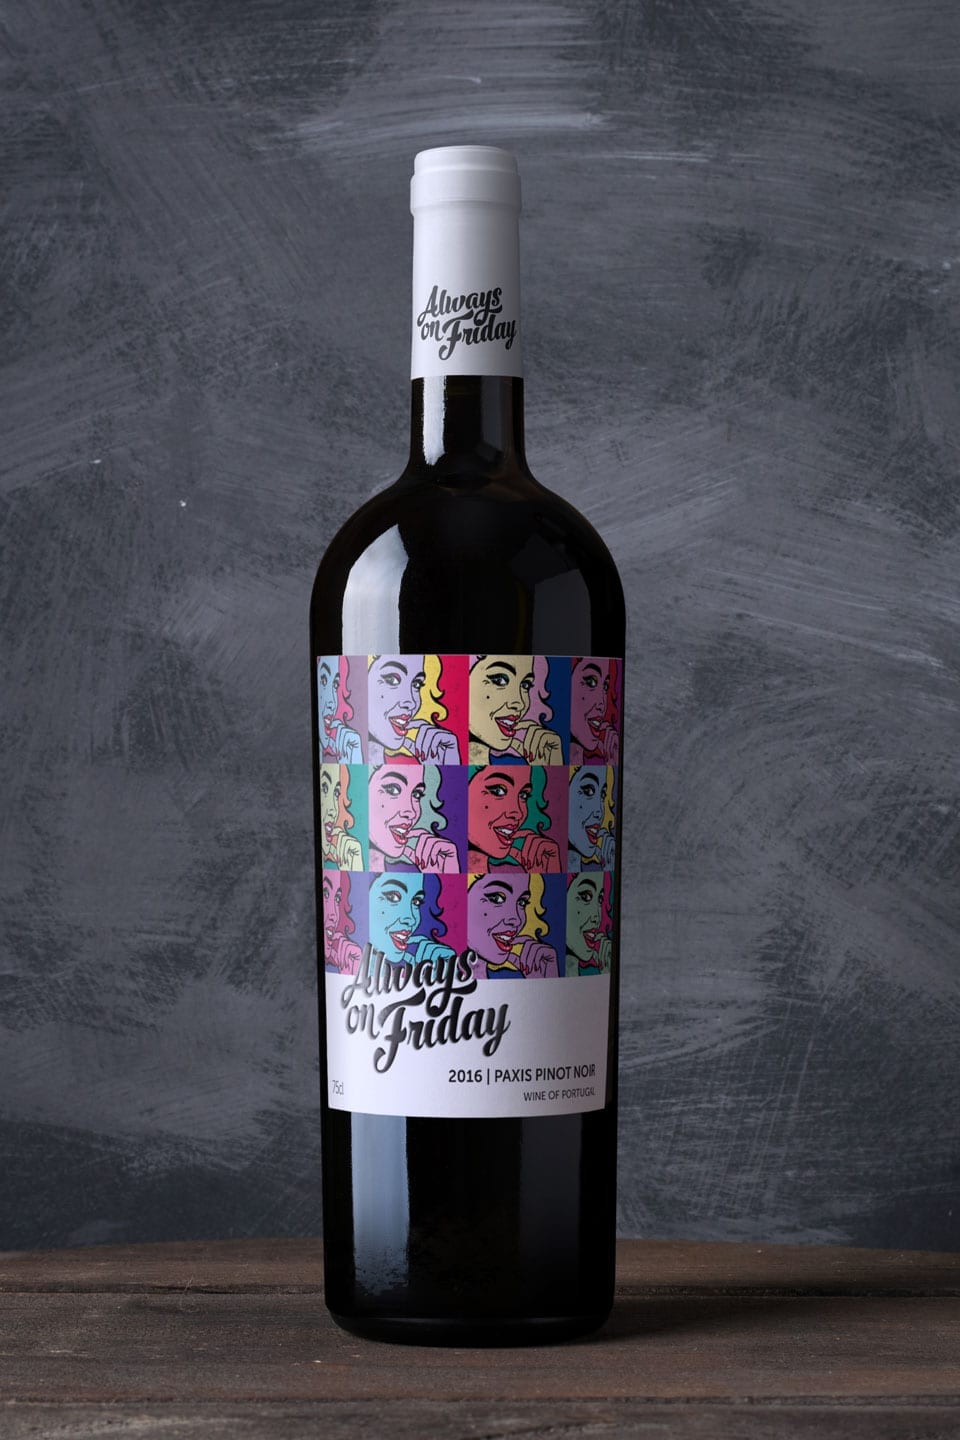 Wine Label Design Always on Friday